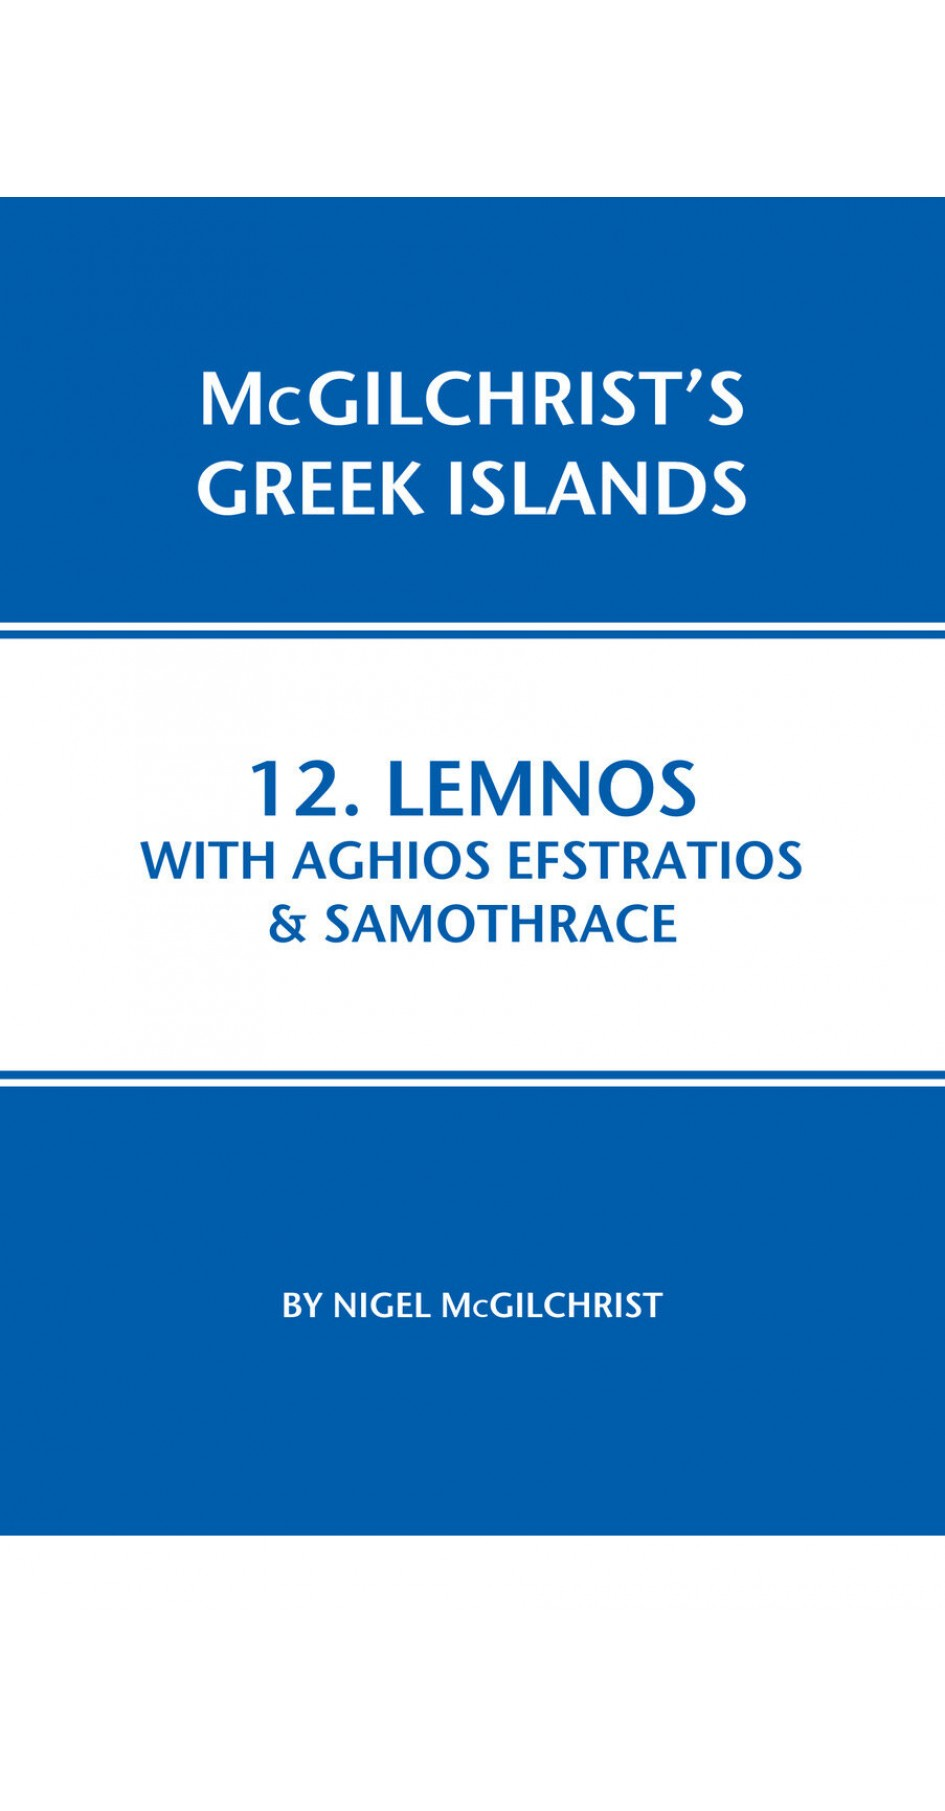 12. Lemnos with Aghios Efstratios & Samothrace - McGilchrist's Greek Islands